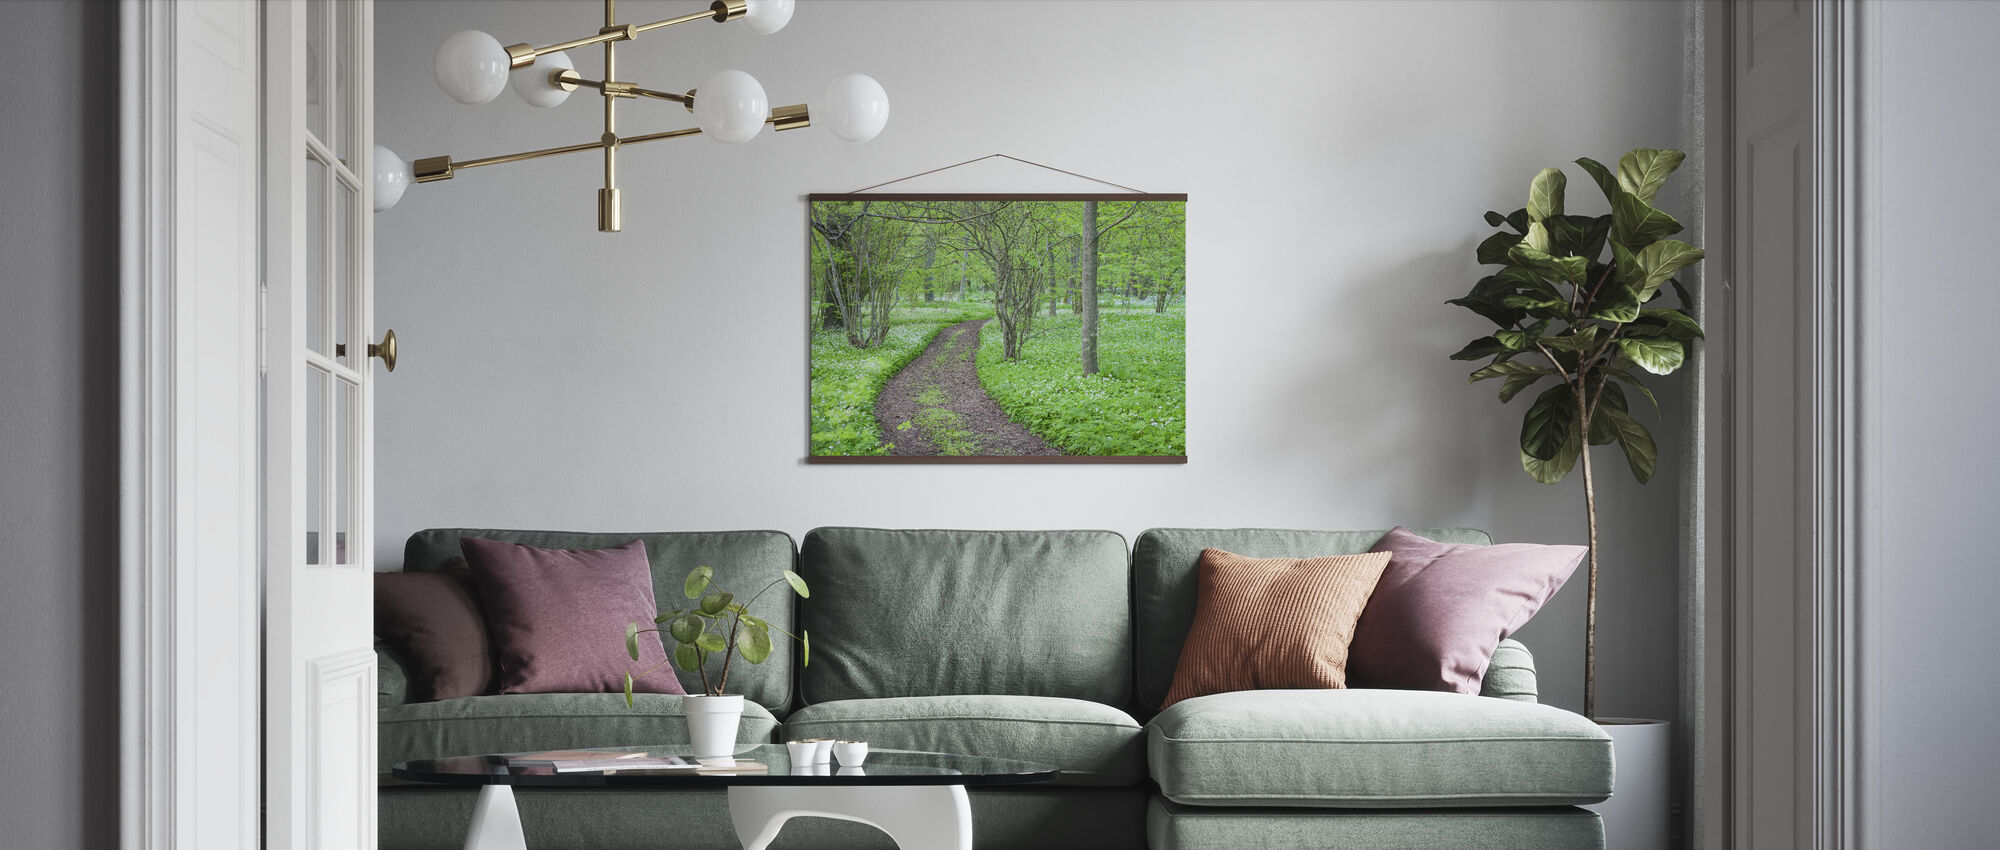 Green Park - Poster - Living Room